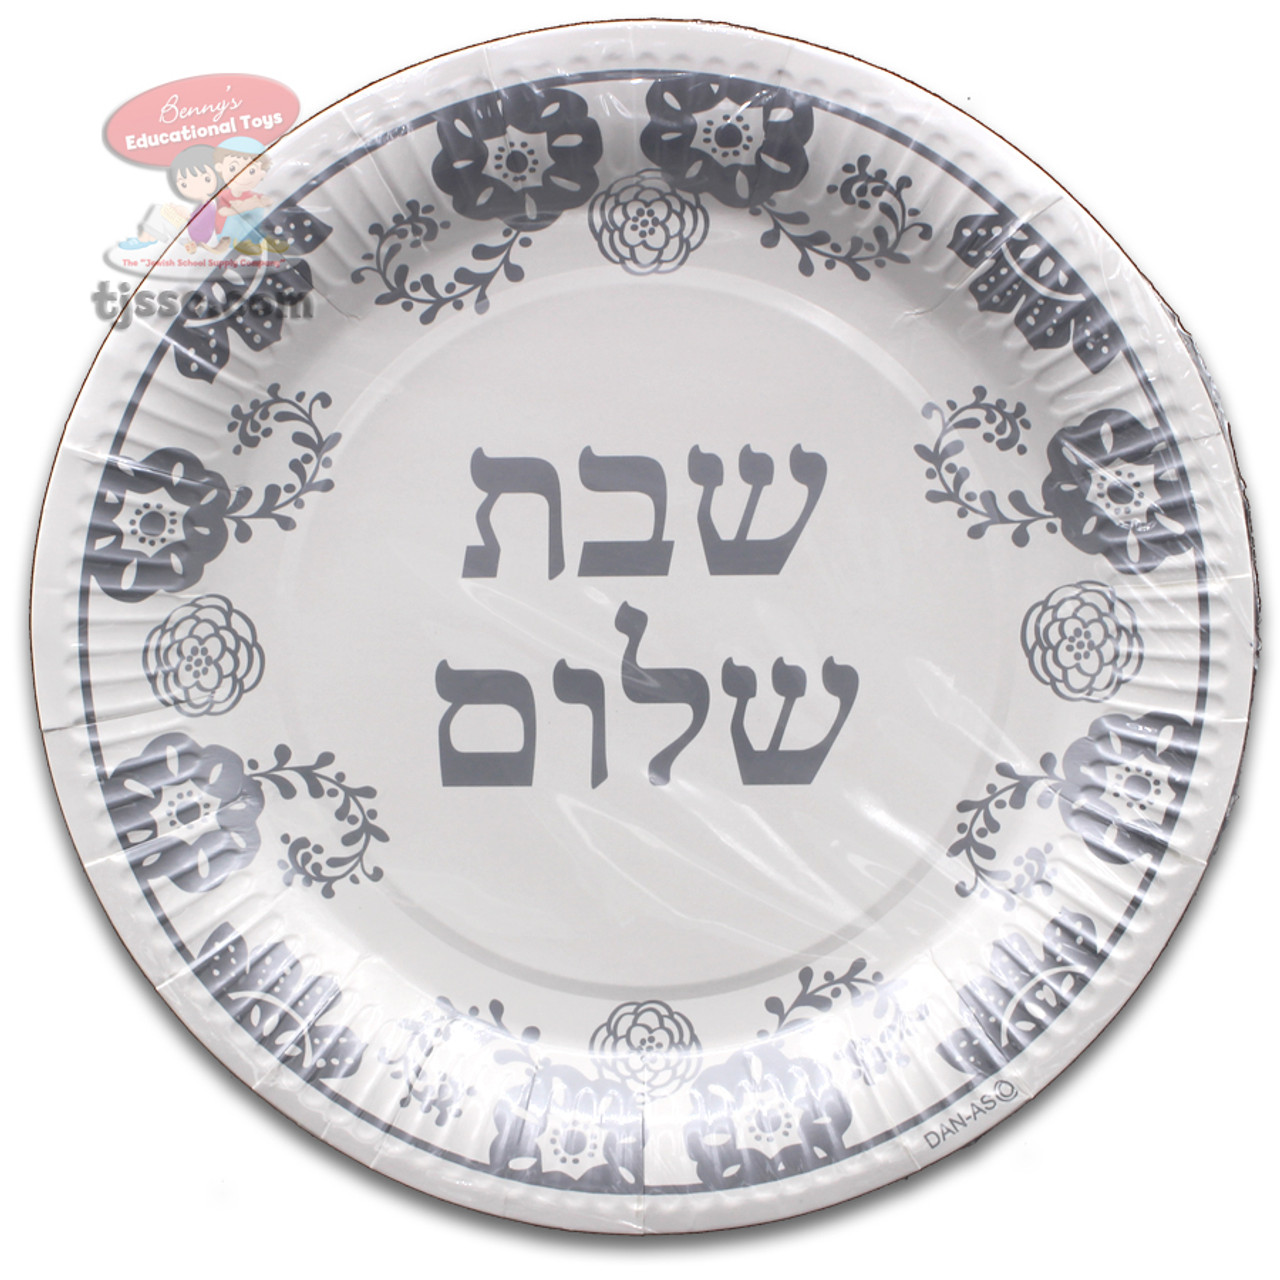 Shabbat Shalom Disposable Paper Plates in Hebrew (Silver)  sc 1 st  Bennyu0027s Educational Toys : disposable paper plates - pezcame.com